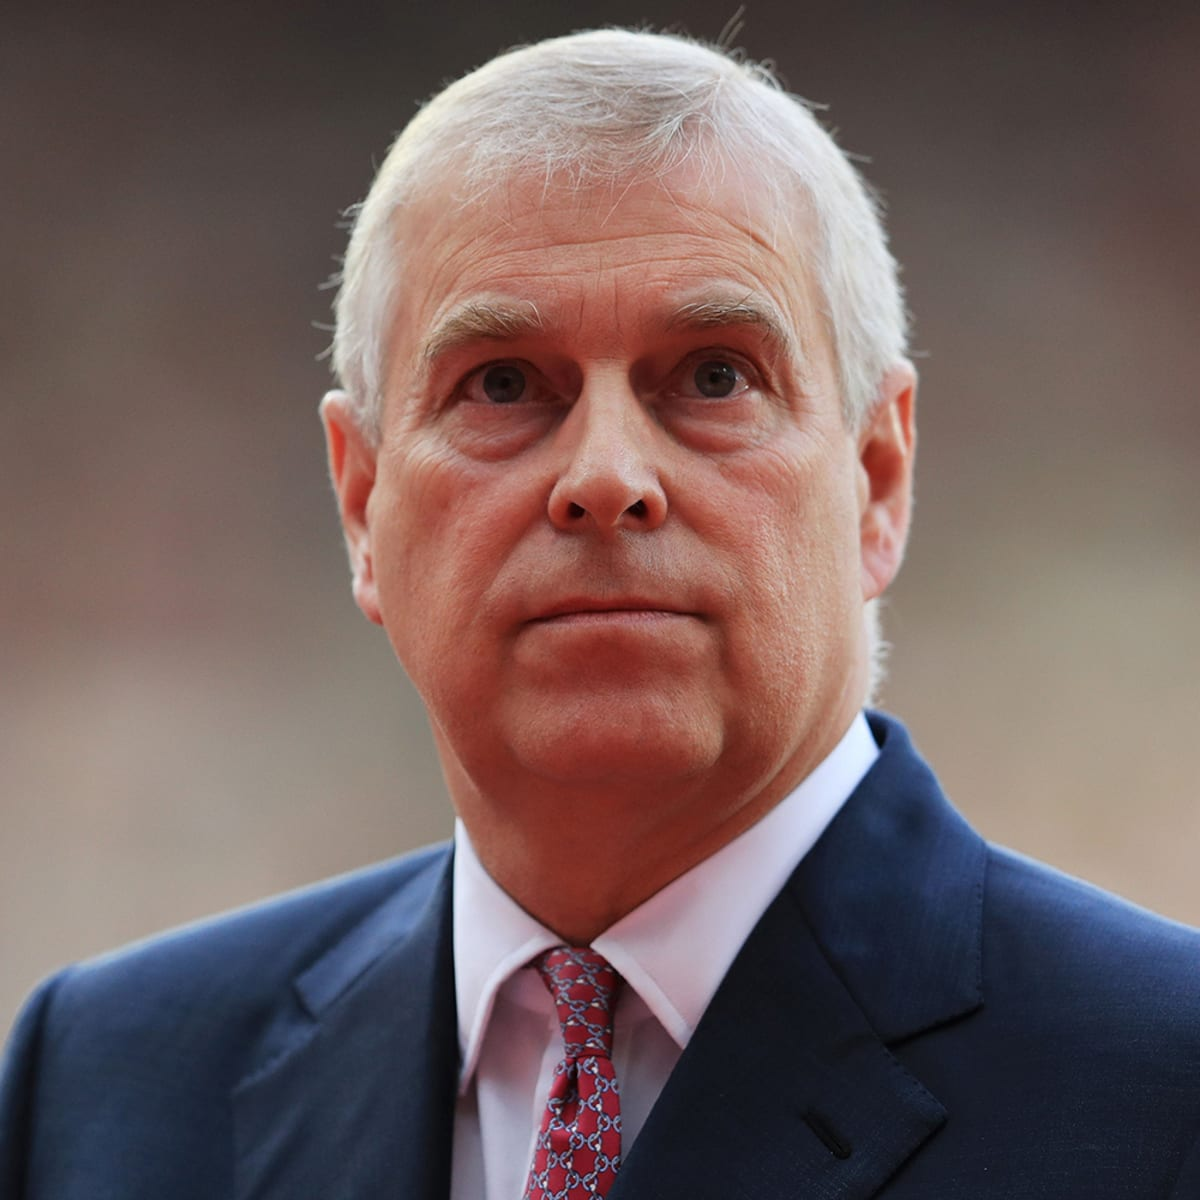 Prince Andrew - Family, Early Life & Facts - Biography